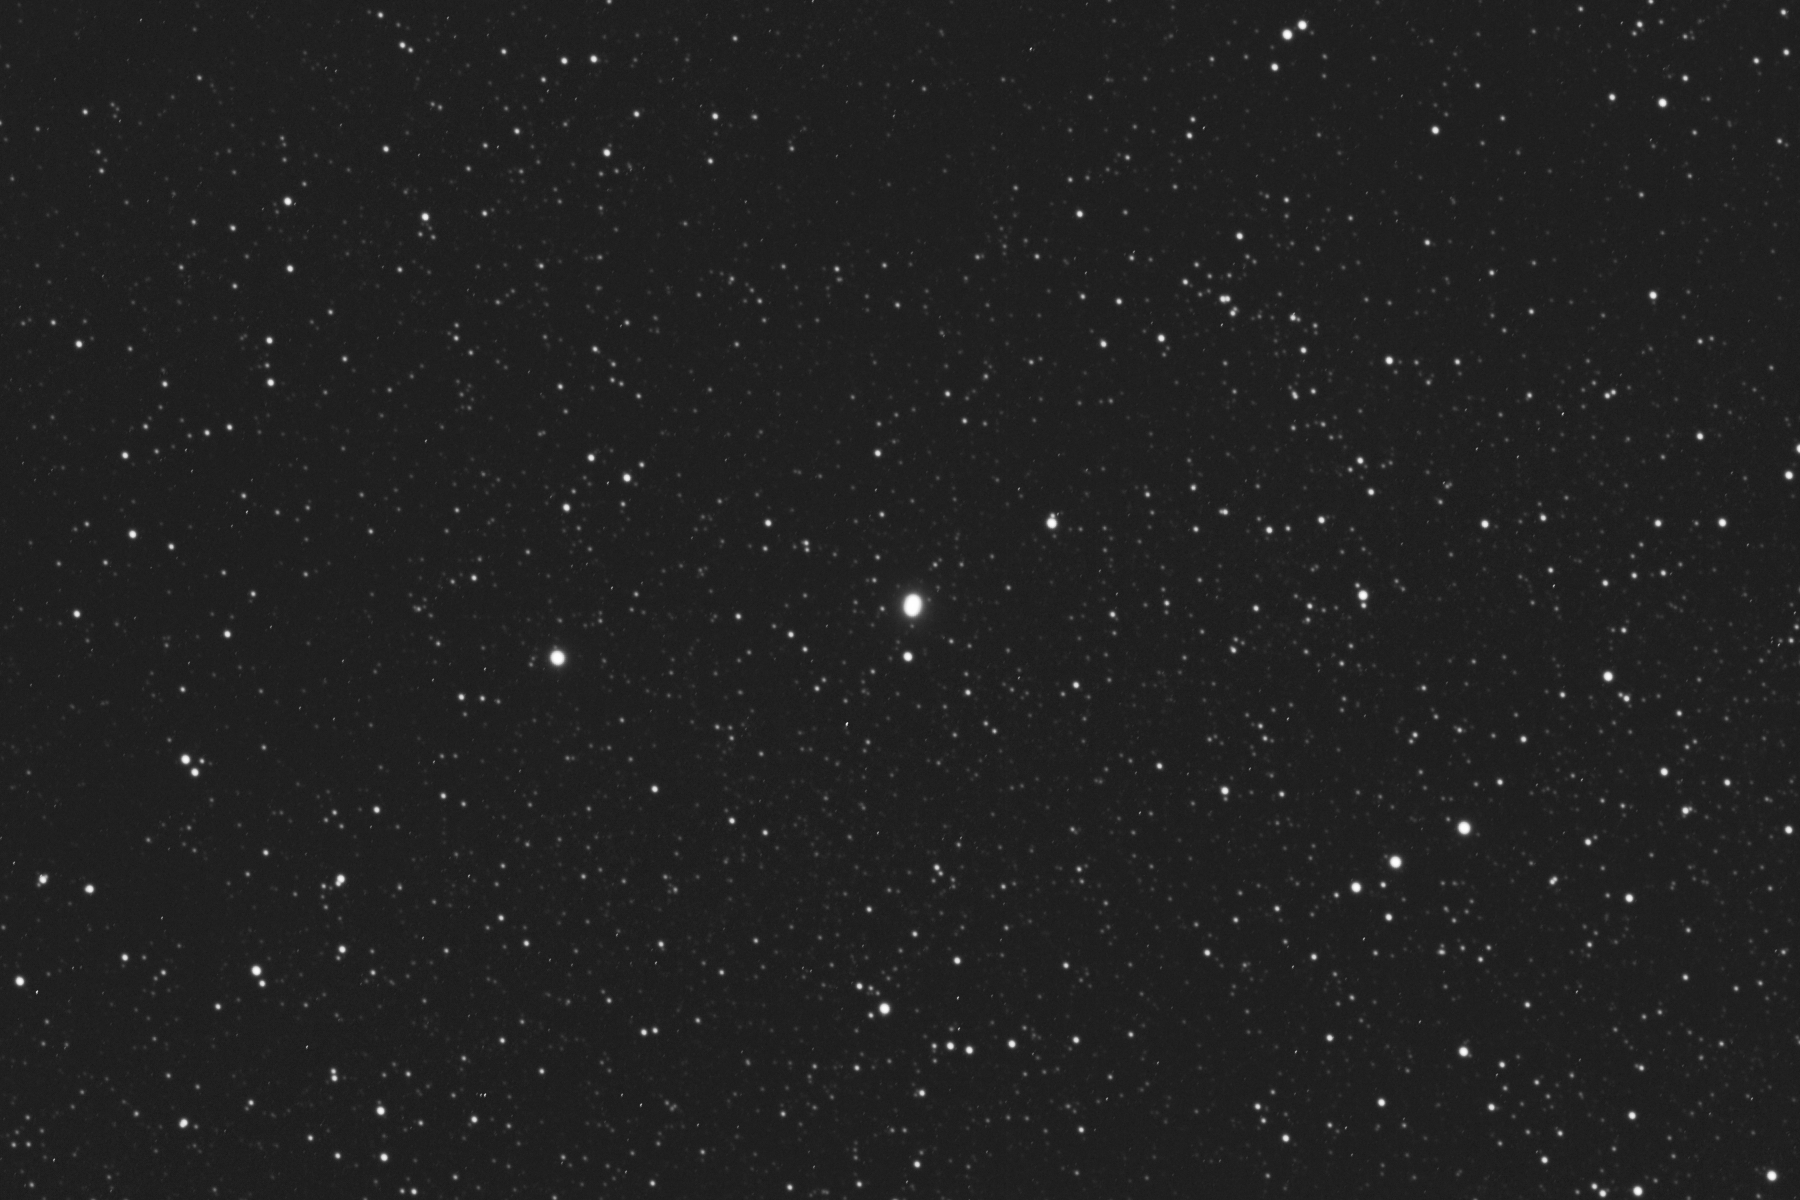 Asteroid 4 Vesta on June 2, 2018 - A closer look